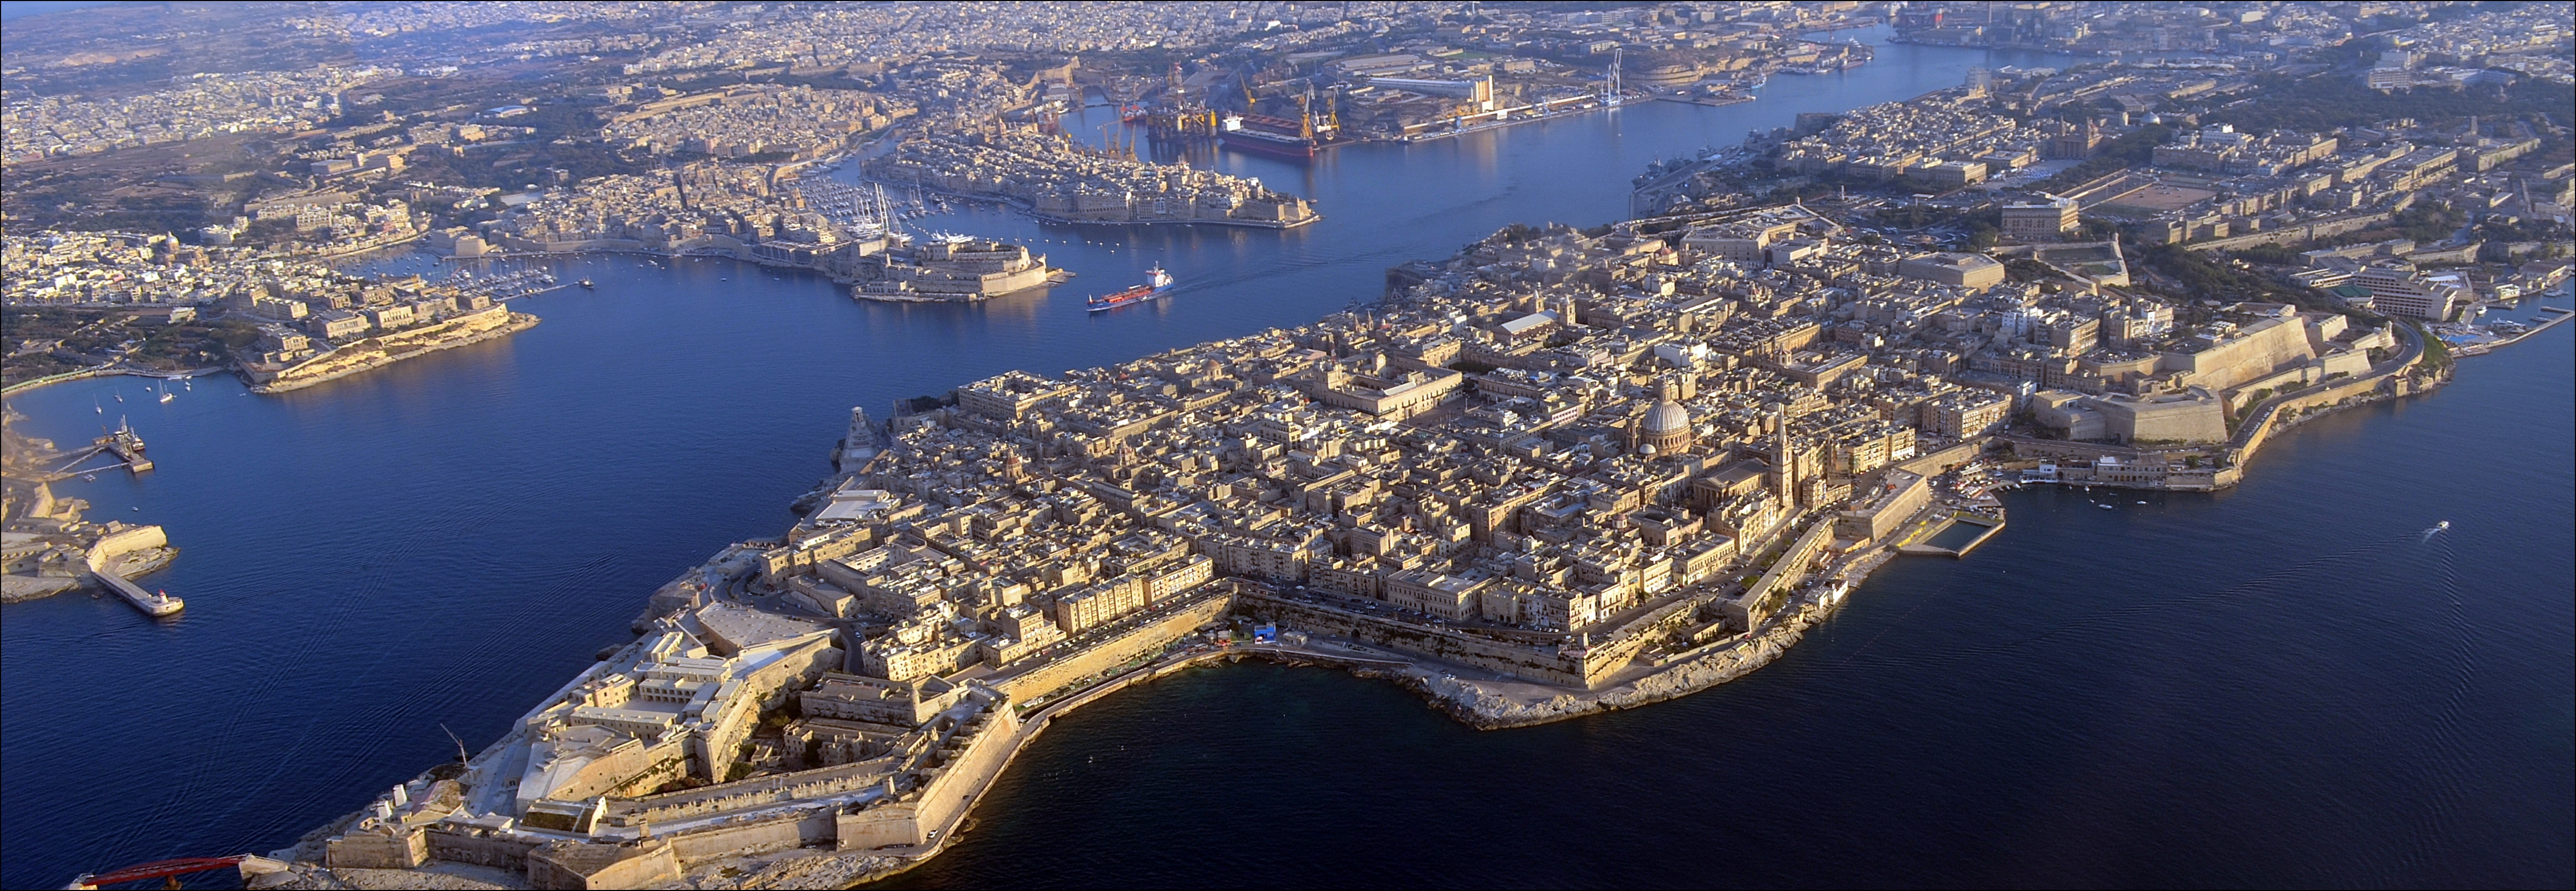 Aerial view showing the exterior and interior outlines of Valletta. Photo taken on June 13, 2014.